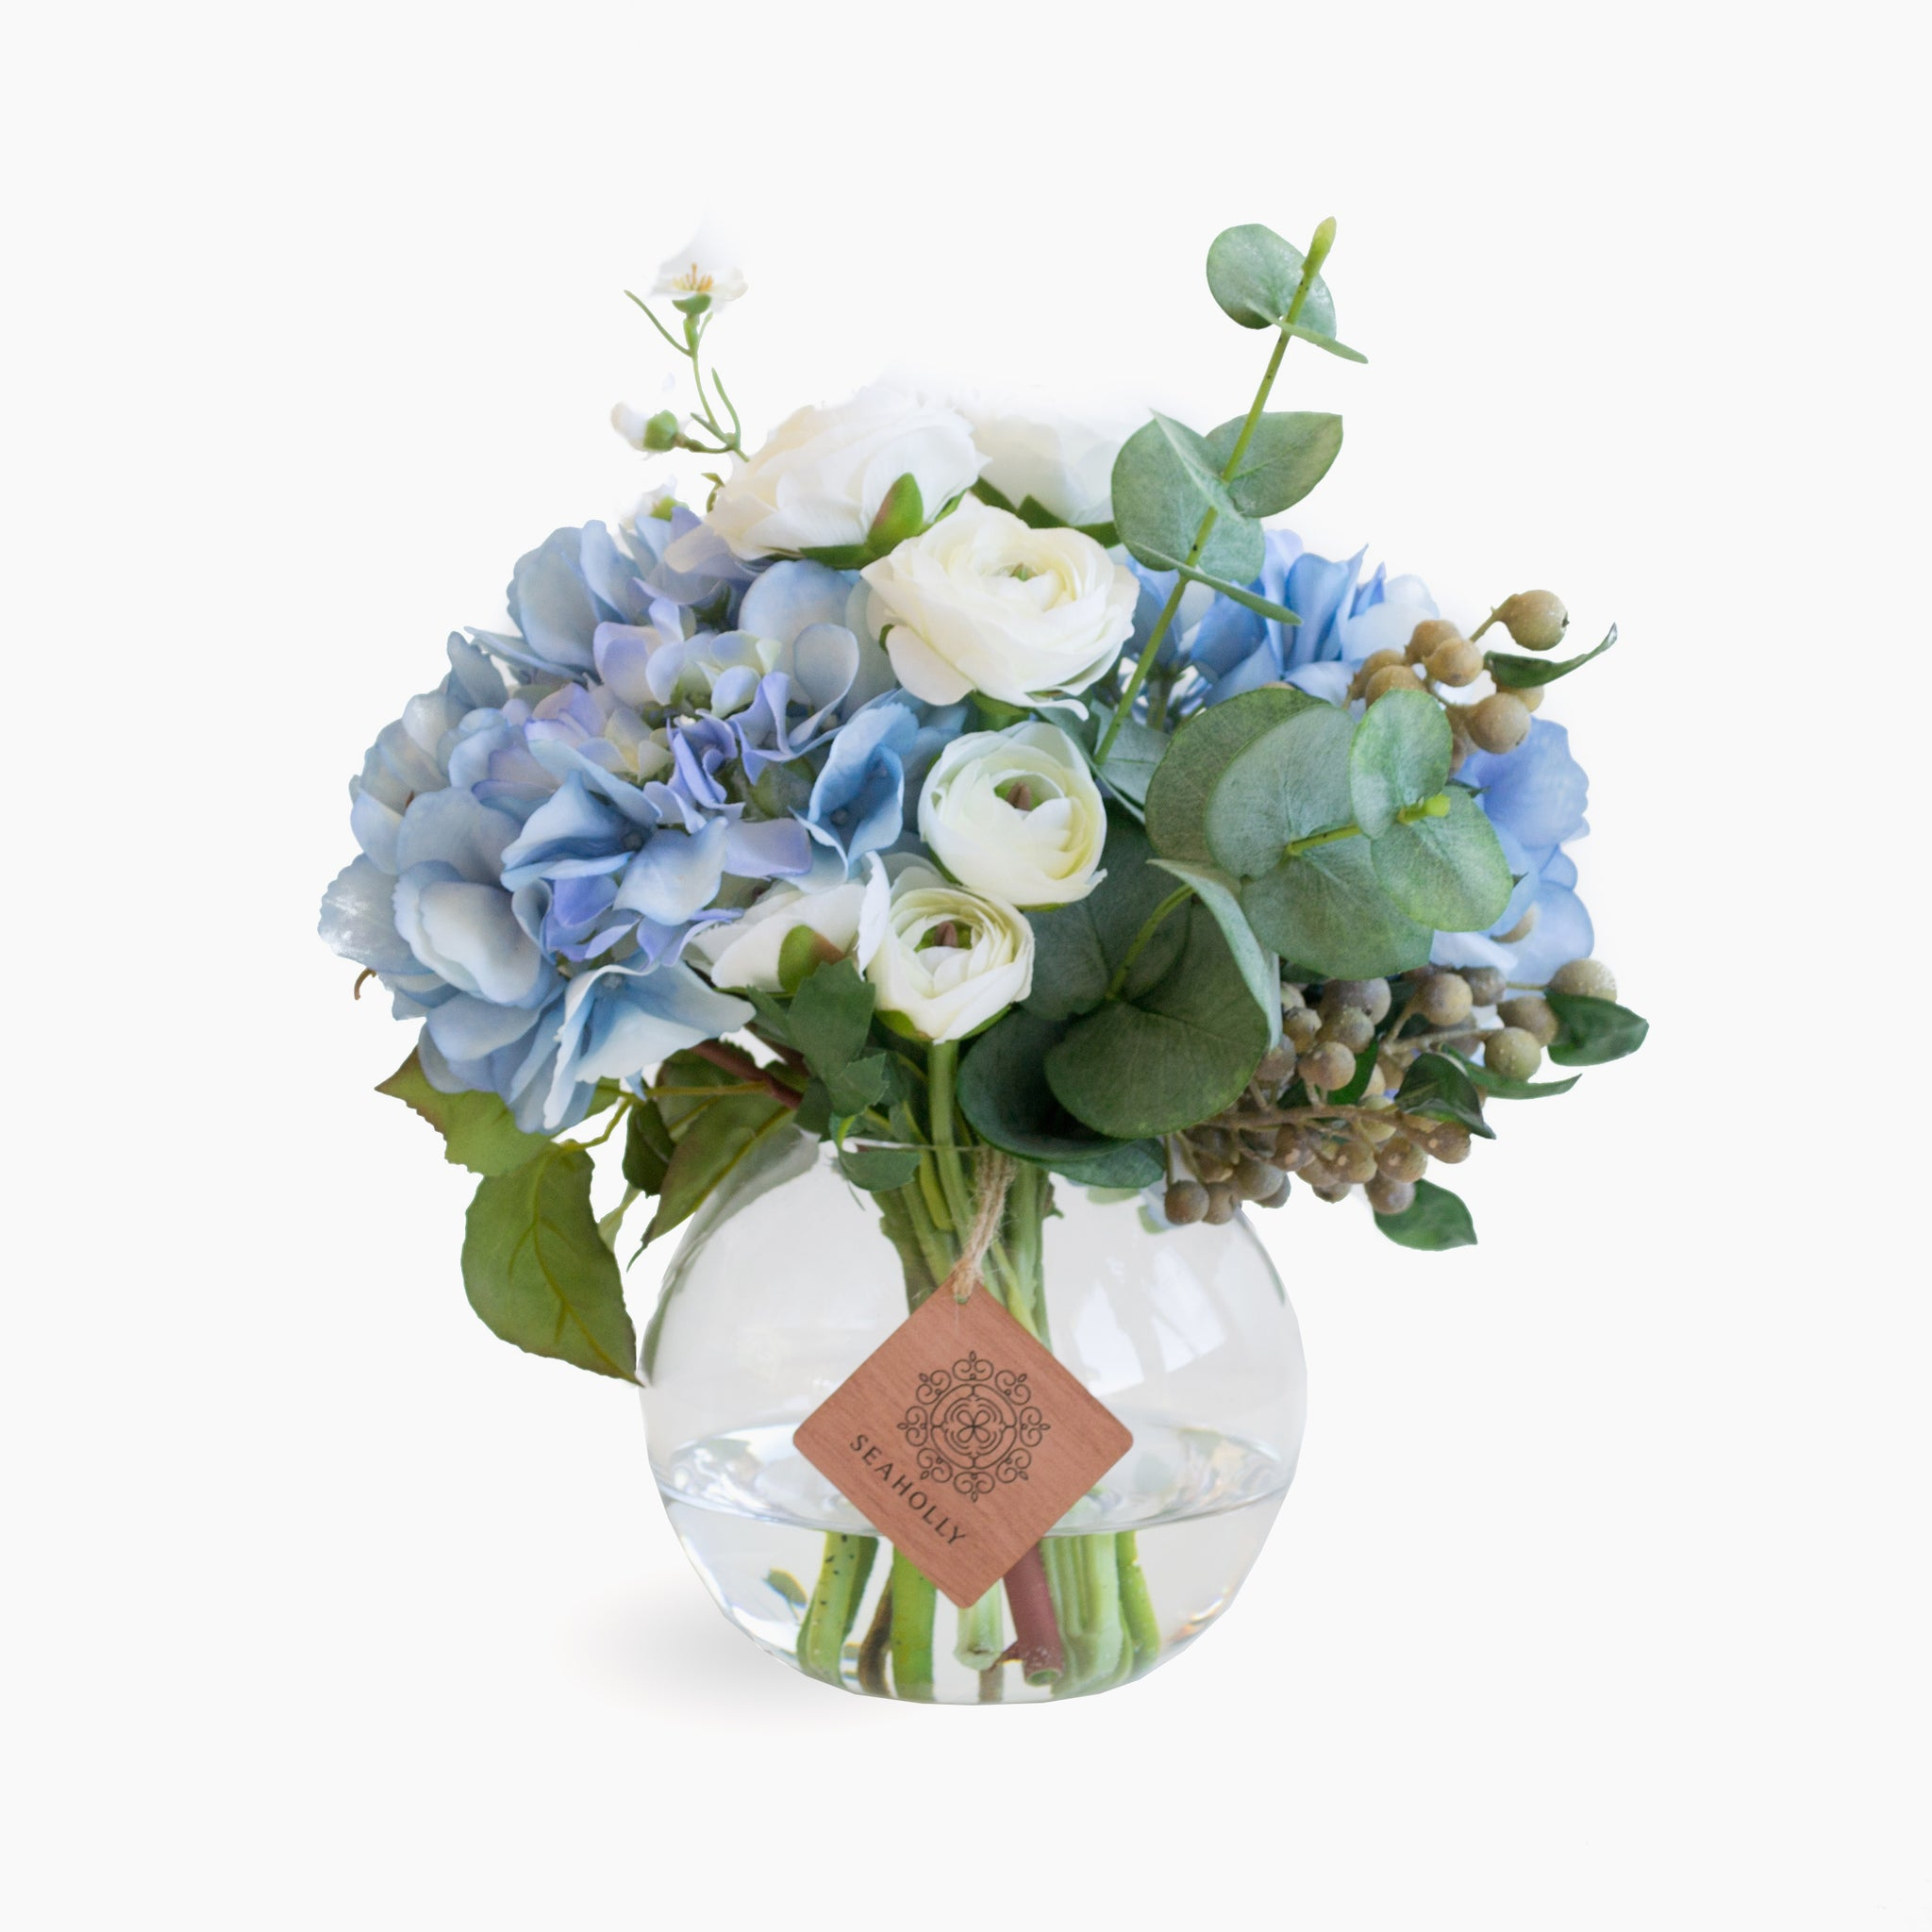 Blue hydrangea, ranunculus and roses